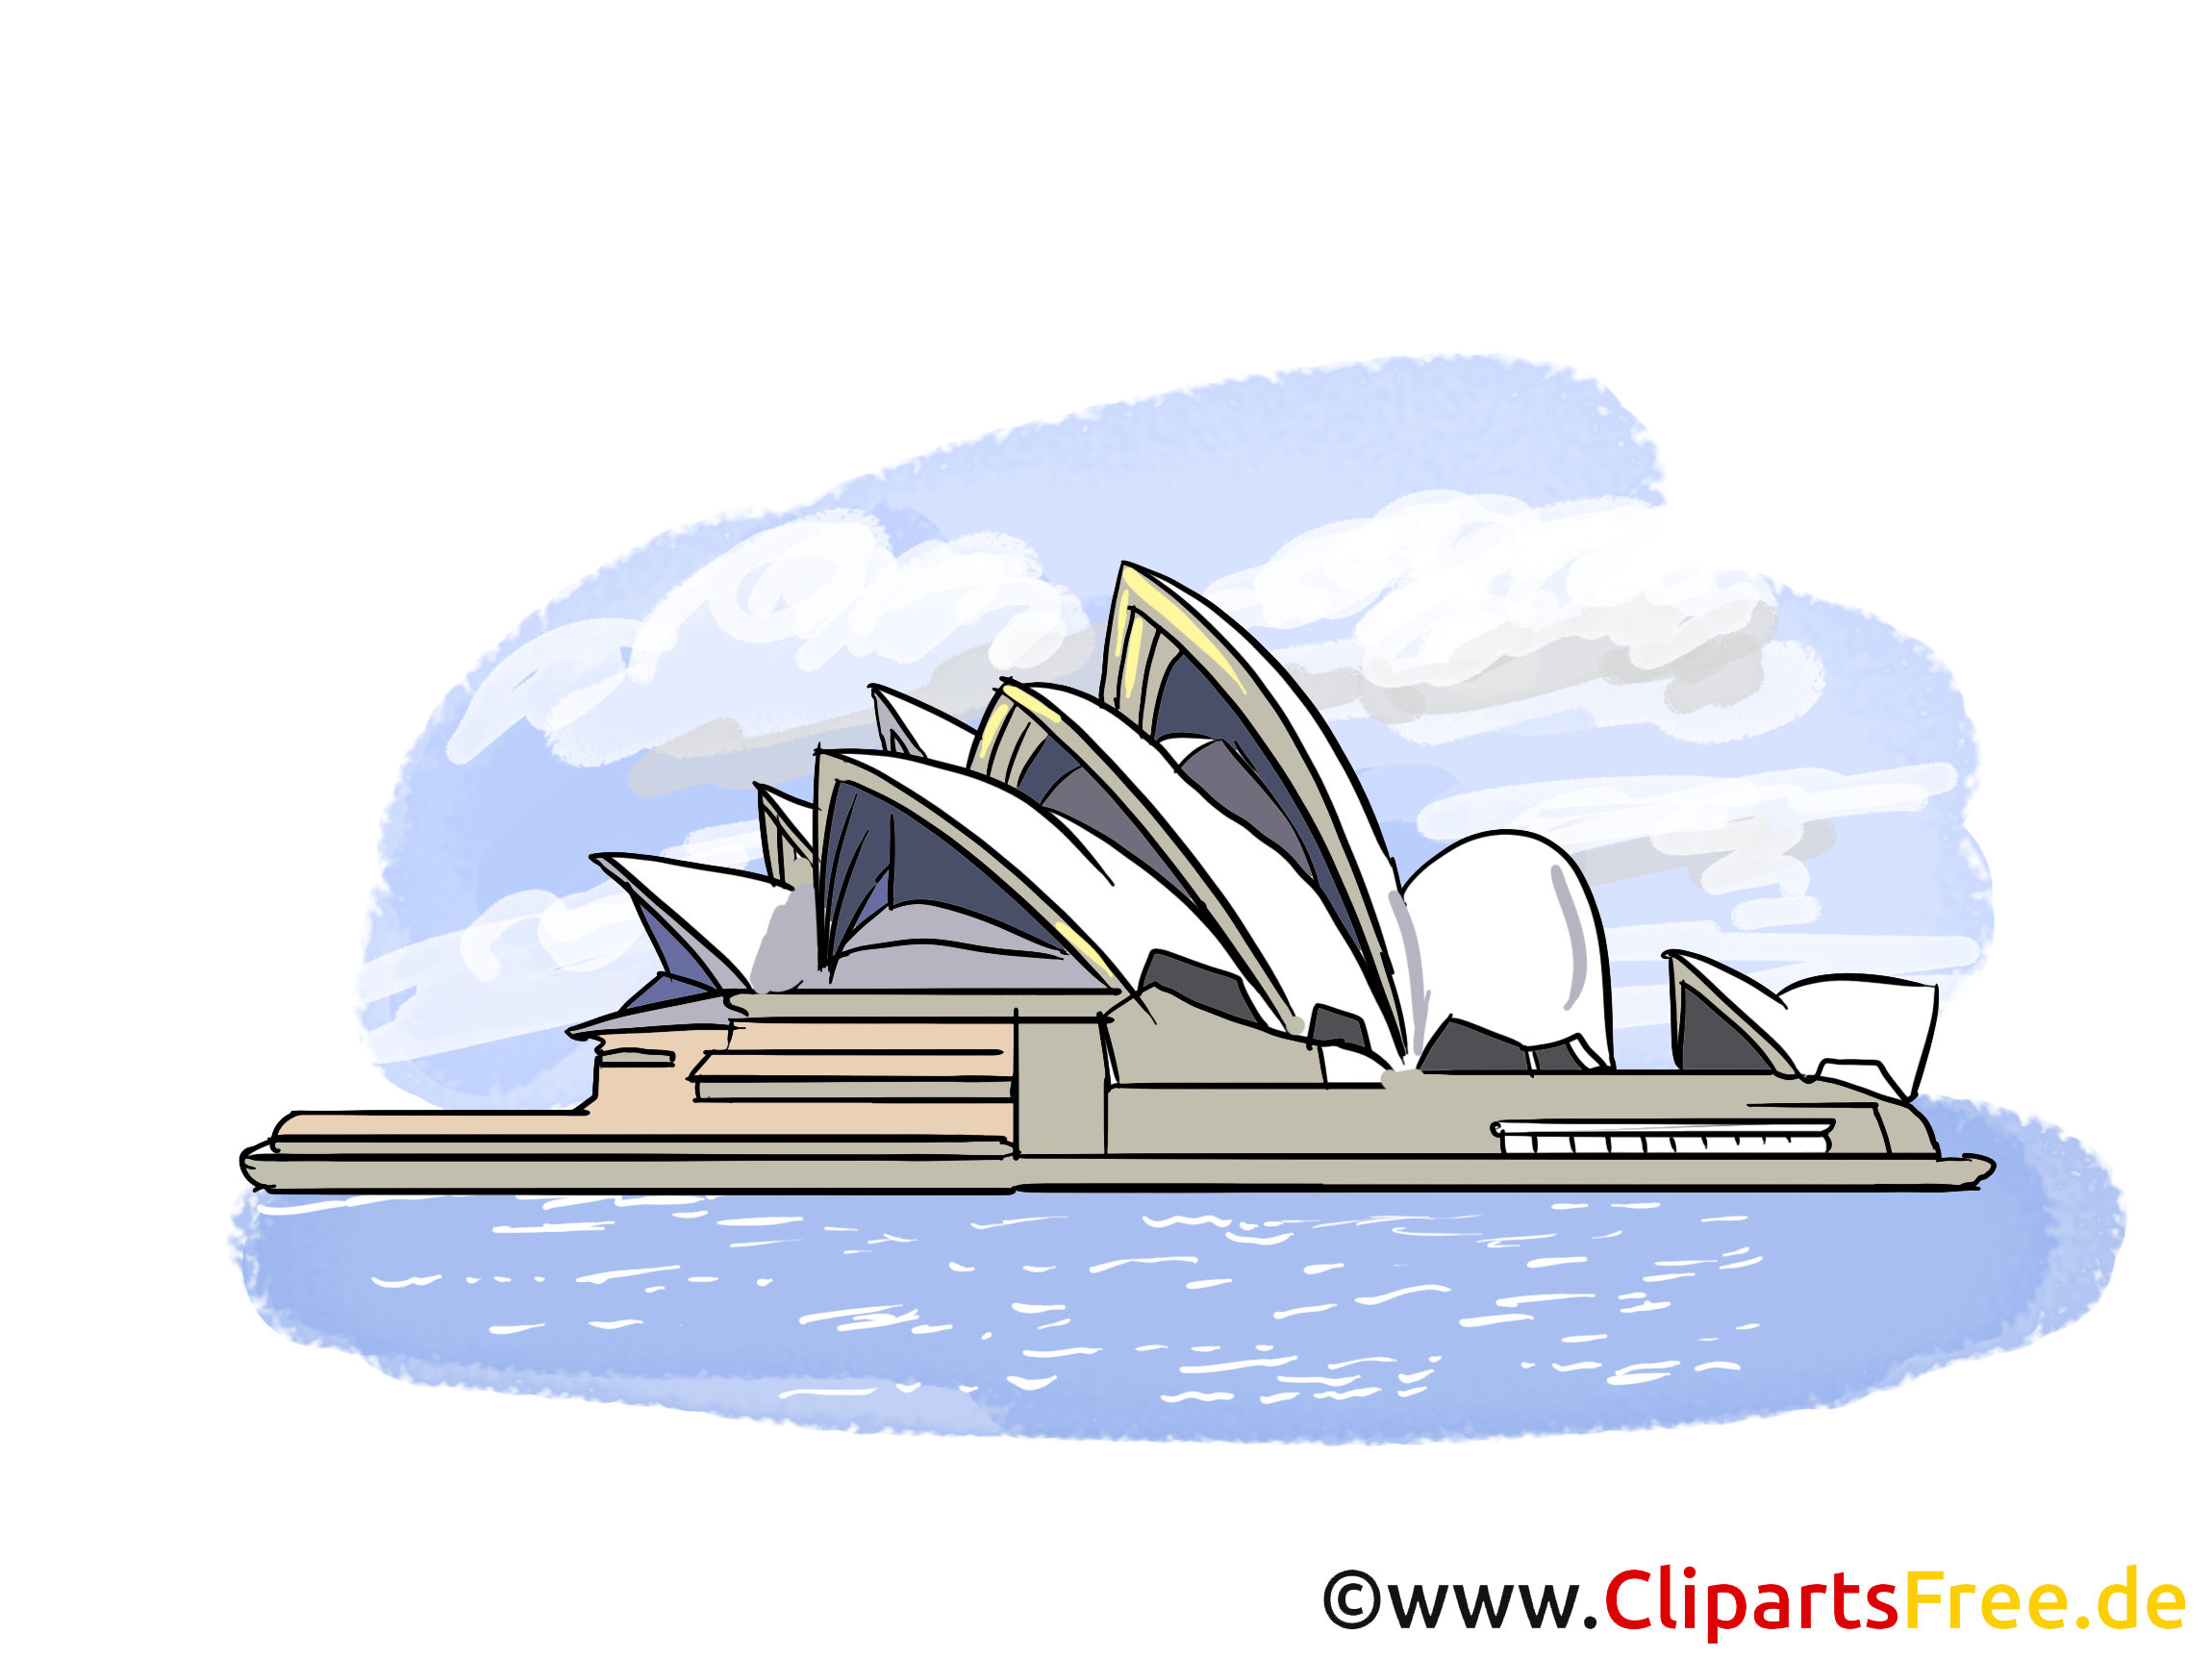 Sydney Opera House Australien Bild, Clipart, Illustration, Grafikm ...